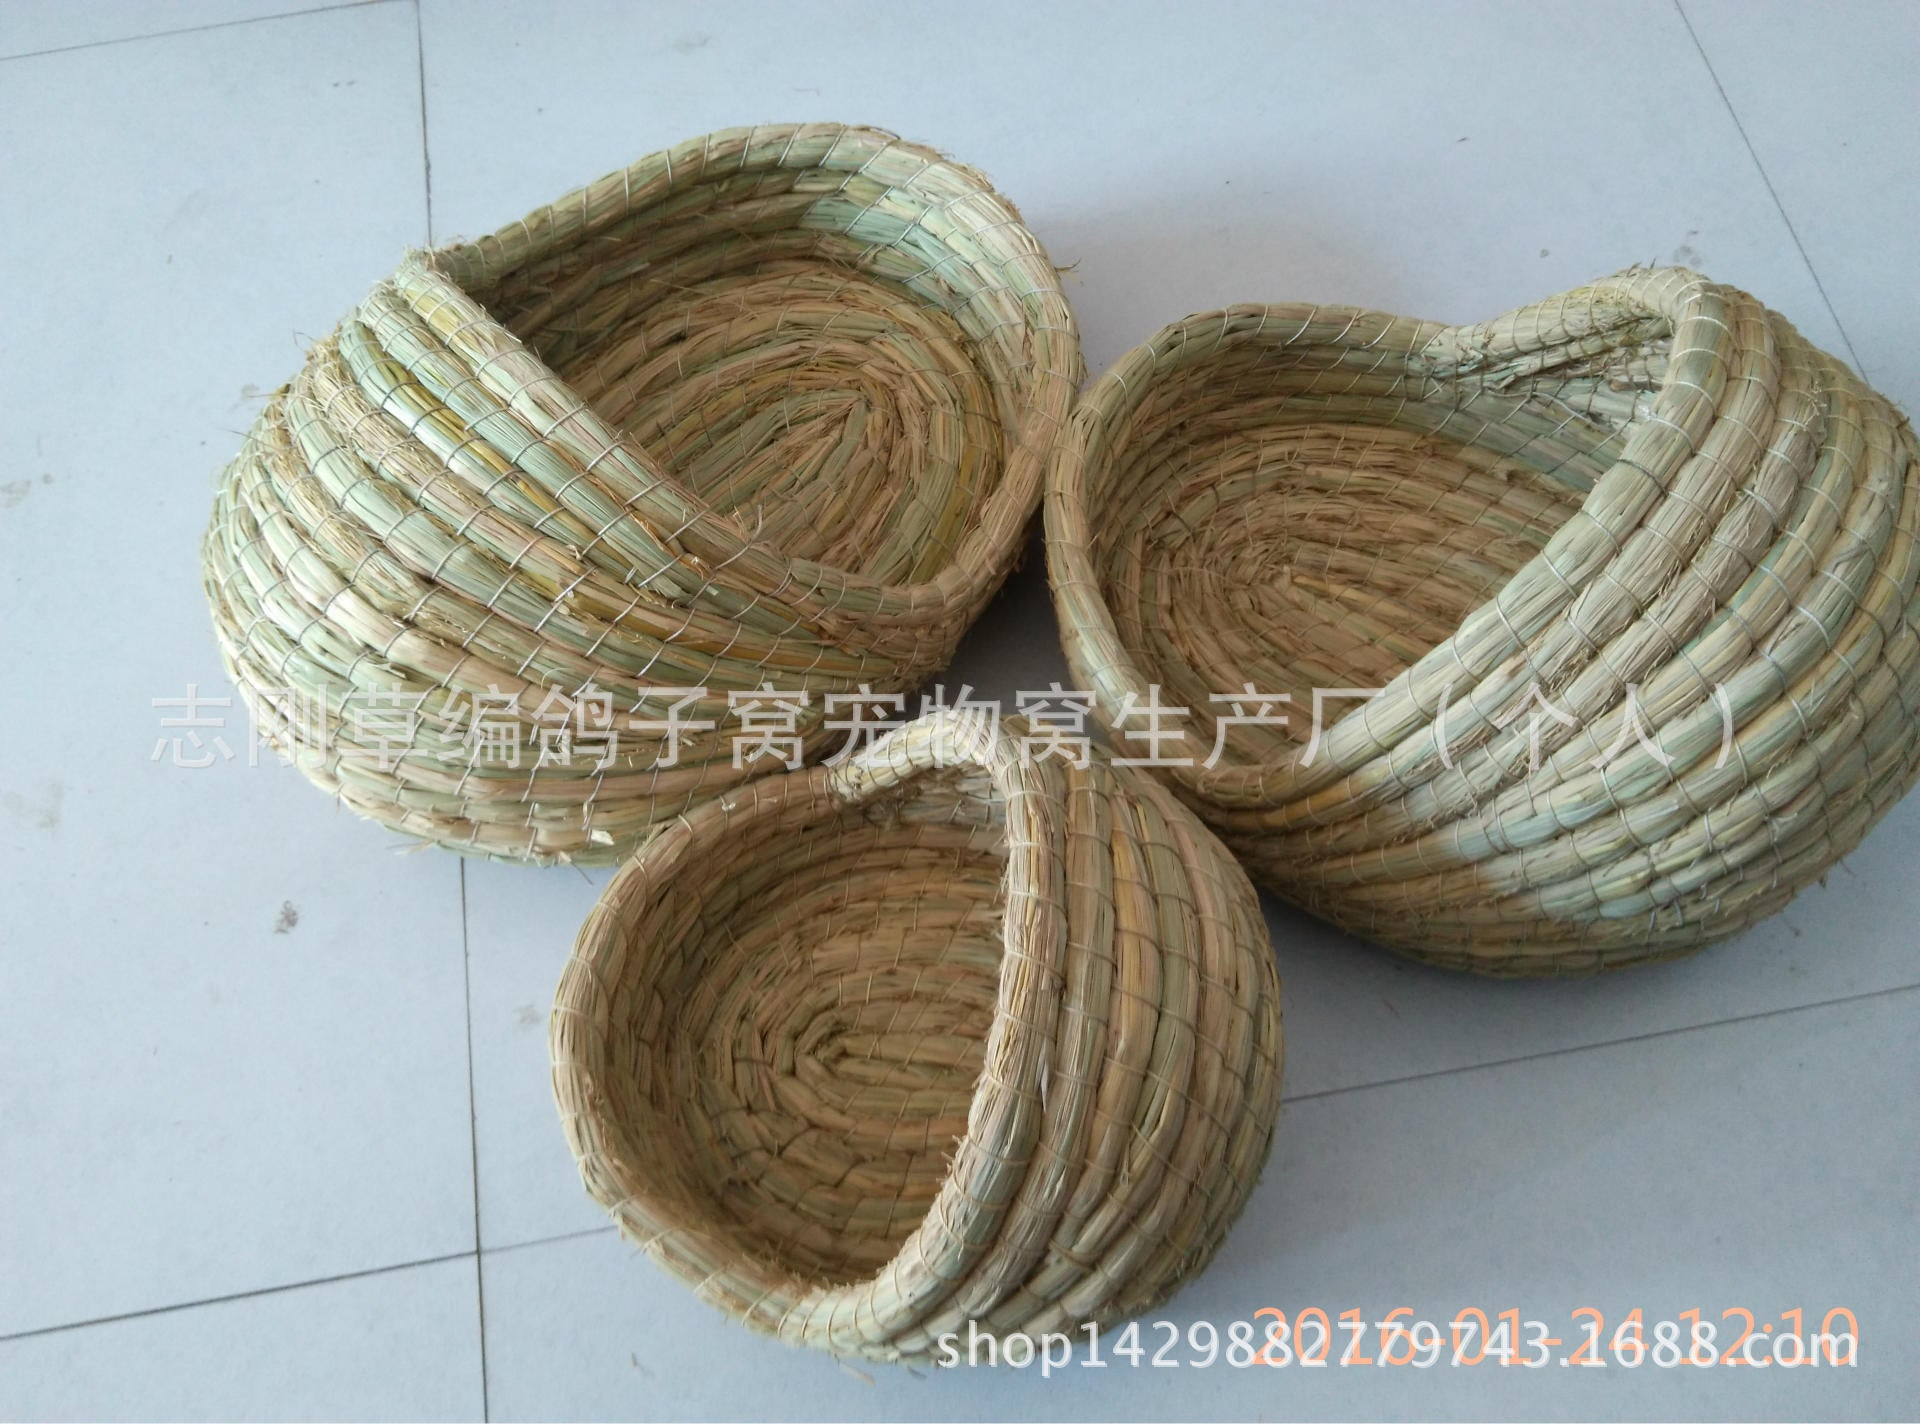 Rabbit nest cradle lop eared rabbit nest chinchillas slippers grass nest cat litter hedgehog nest grass cage molar grass nest pigeon nest